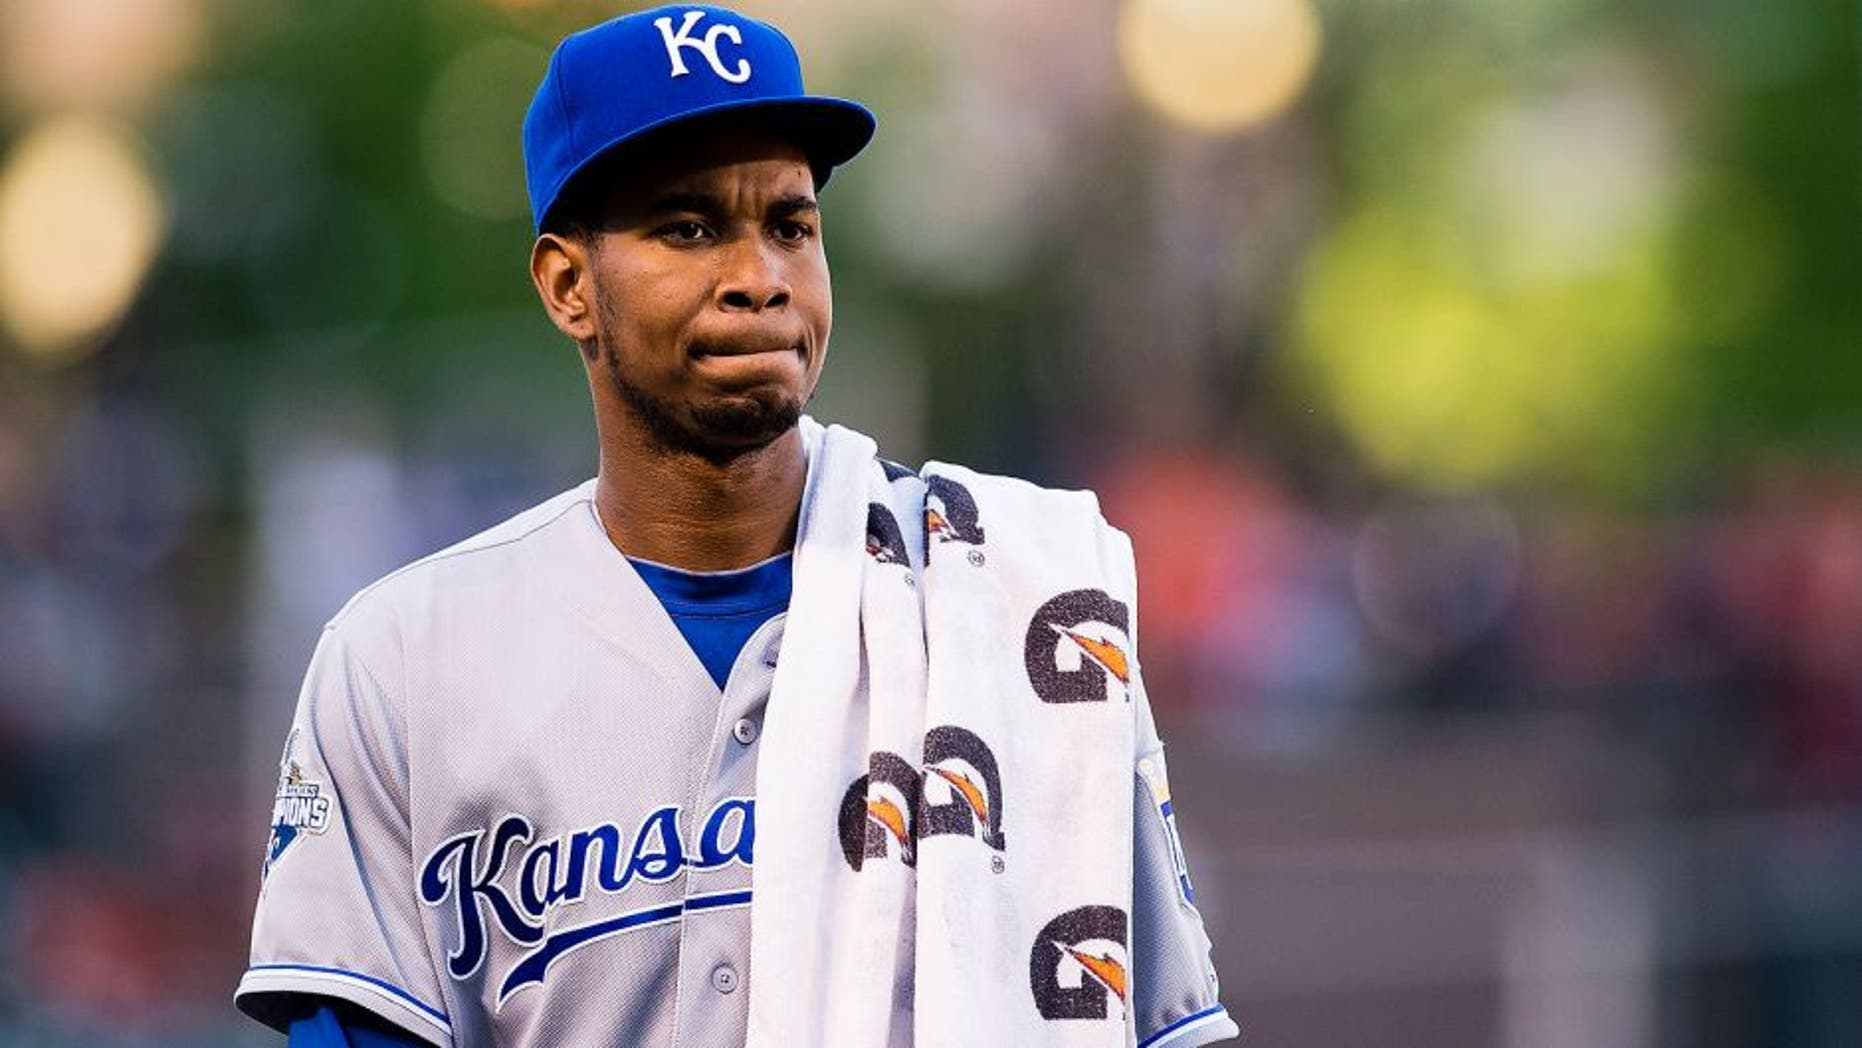 BALTIMORE, MD - JUNE 07: Yordano Ventura #30 of the Kansas City Royals walks from the bullpin to the dugout after warming up prior to the start of a MLB baseball game against the Baltimore Orioles at Oriole Park at Camden Yards on June 7, 2016 in Baltimore, Maryland. (Photo by Patrick McDermott/Getty Images)